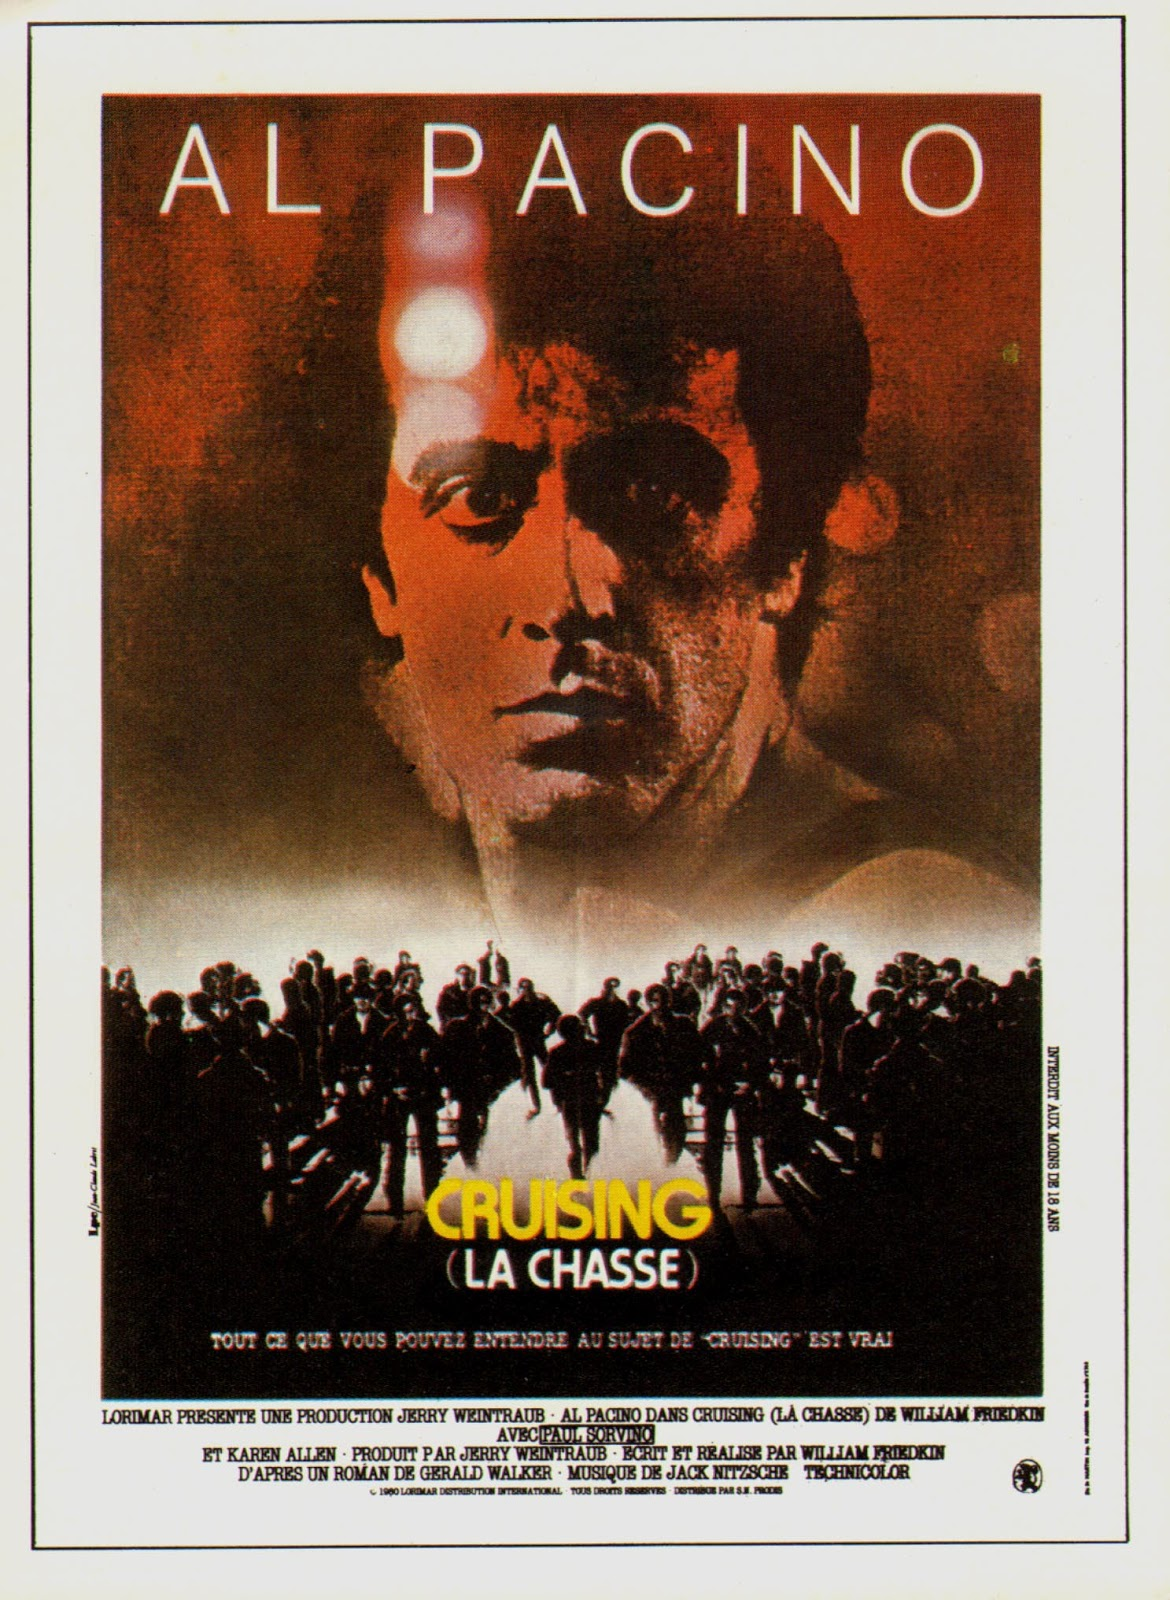 CRUISING de William Friedkin